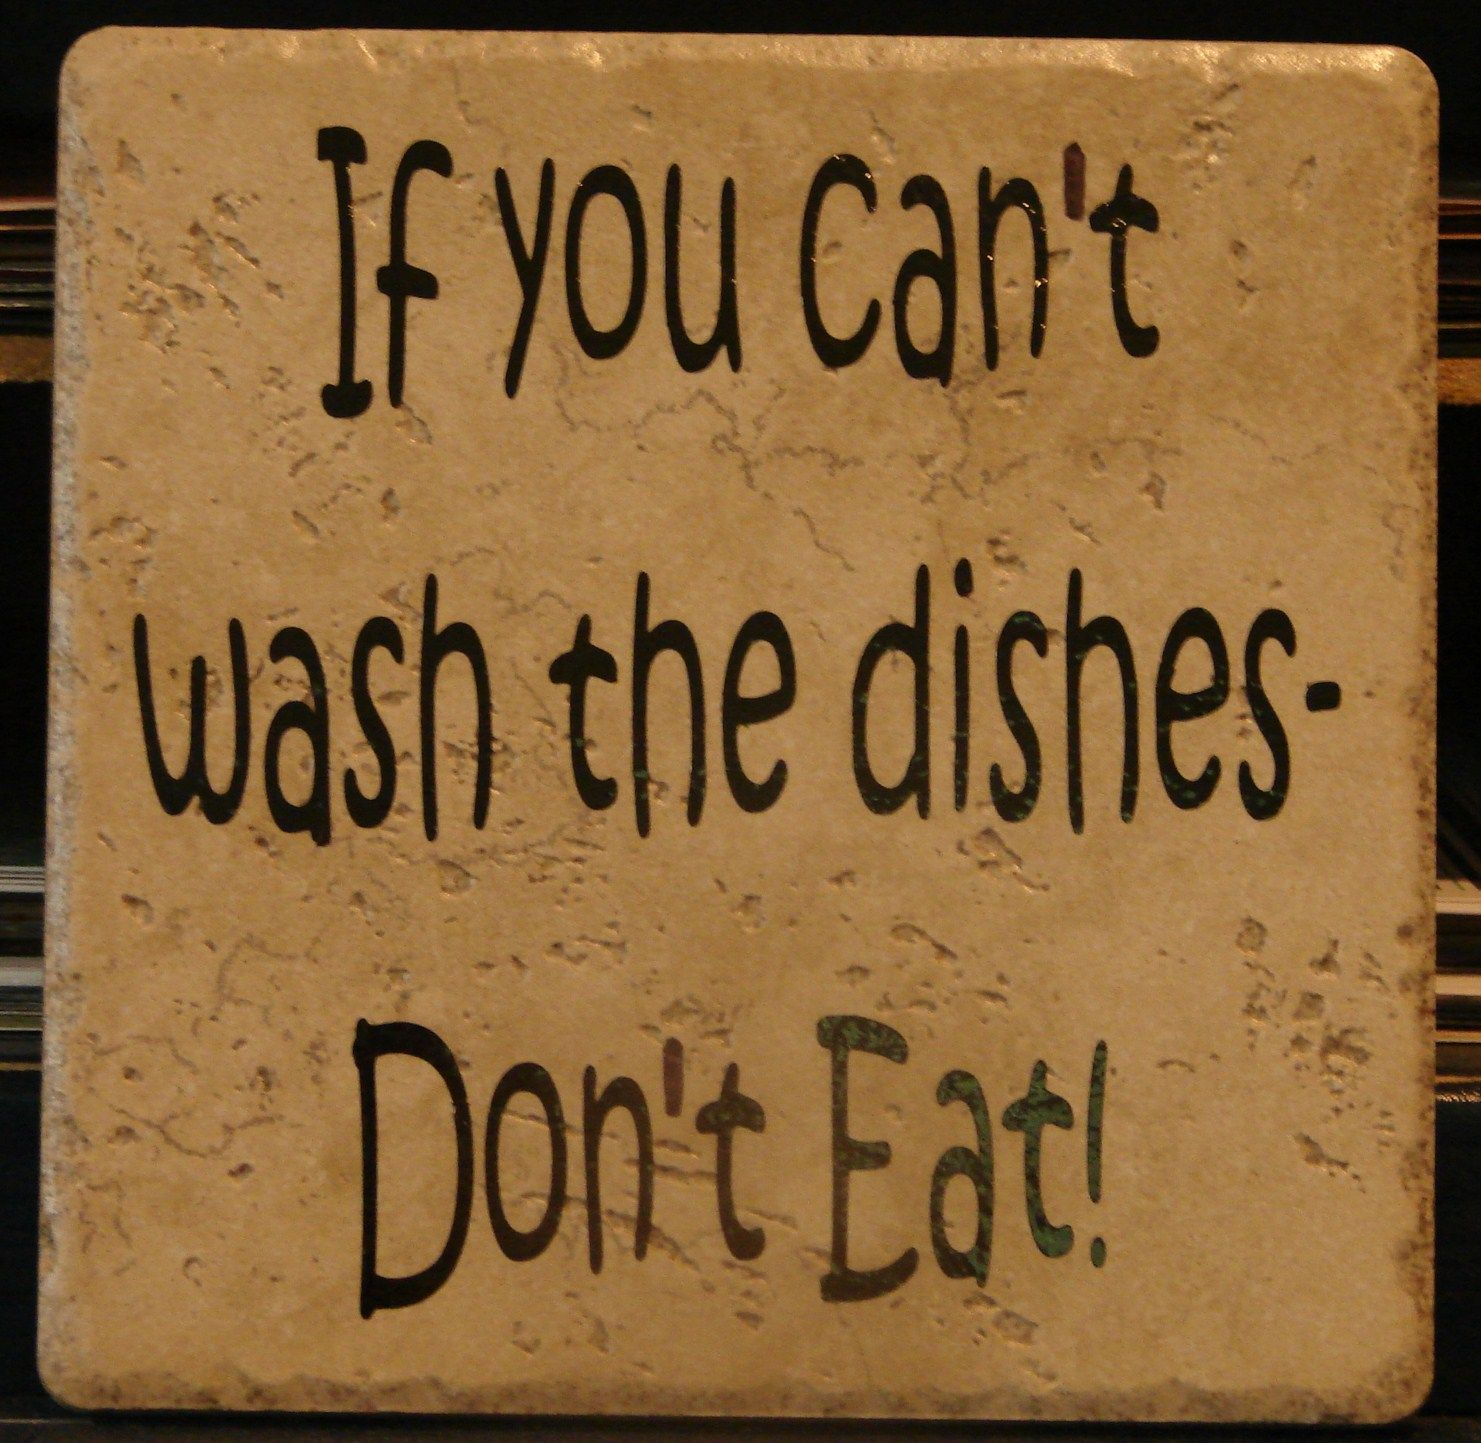 every kitchen needs this one! If you can't wash the dishes ...